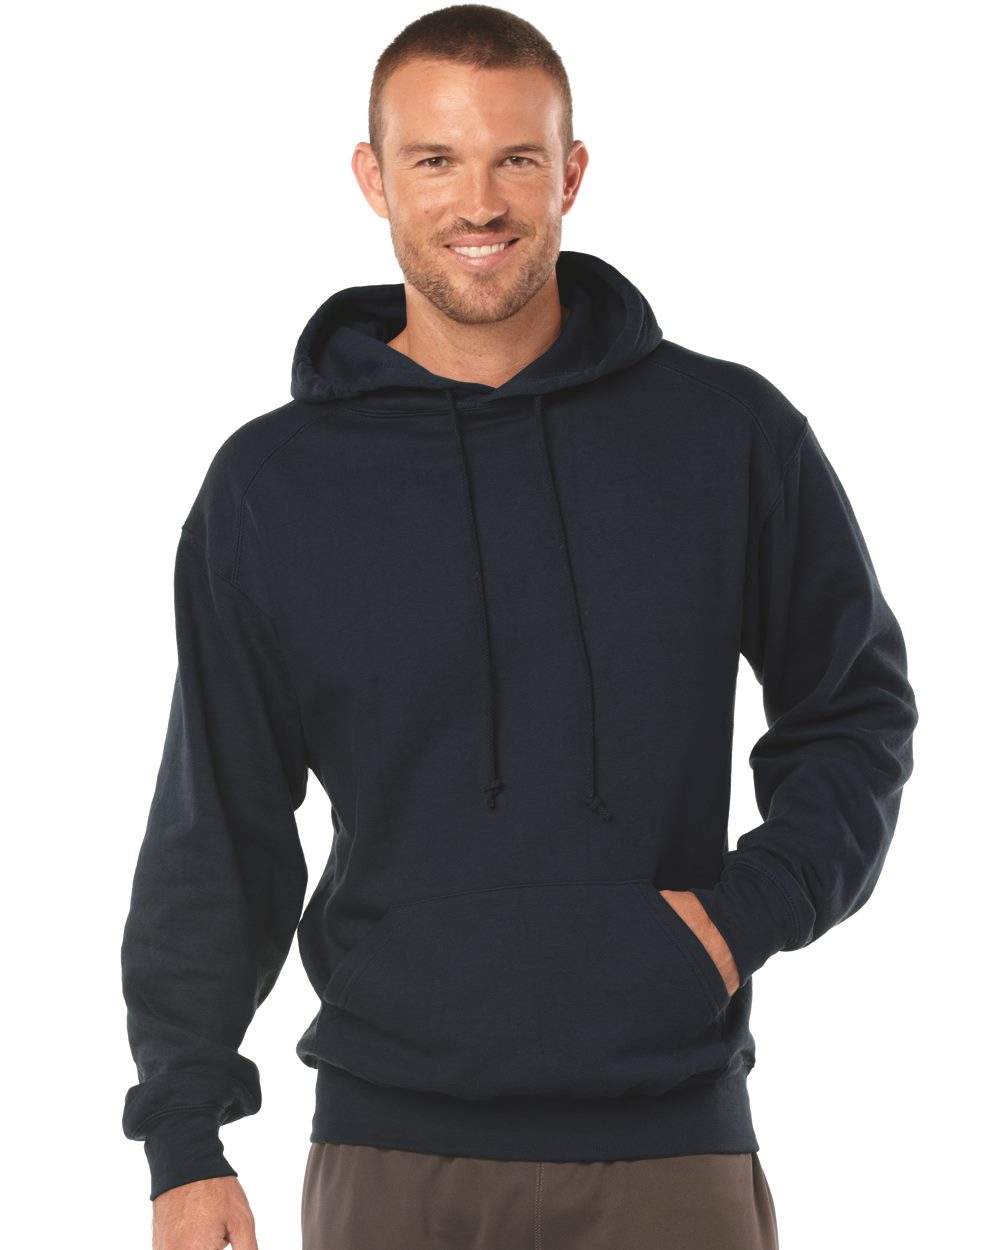 Badger Sport 1254 Hooded Sweatshirt with Sport Shoulders